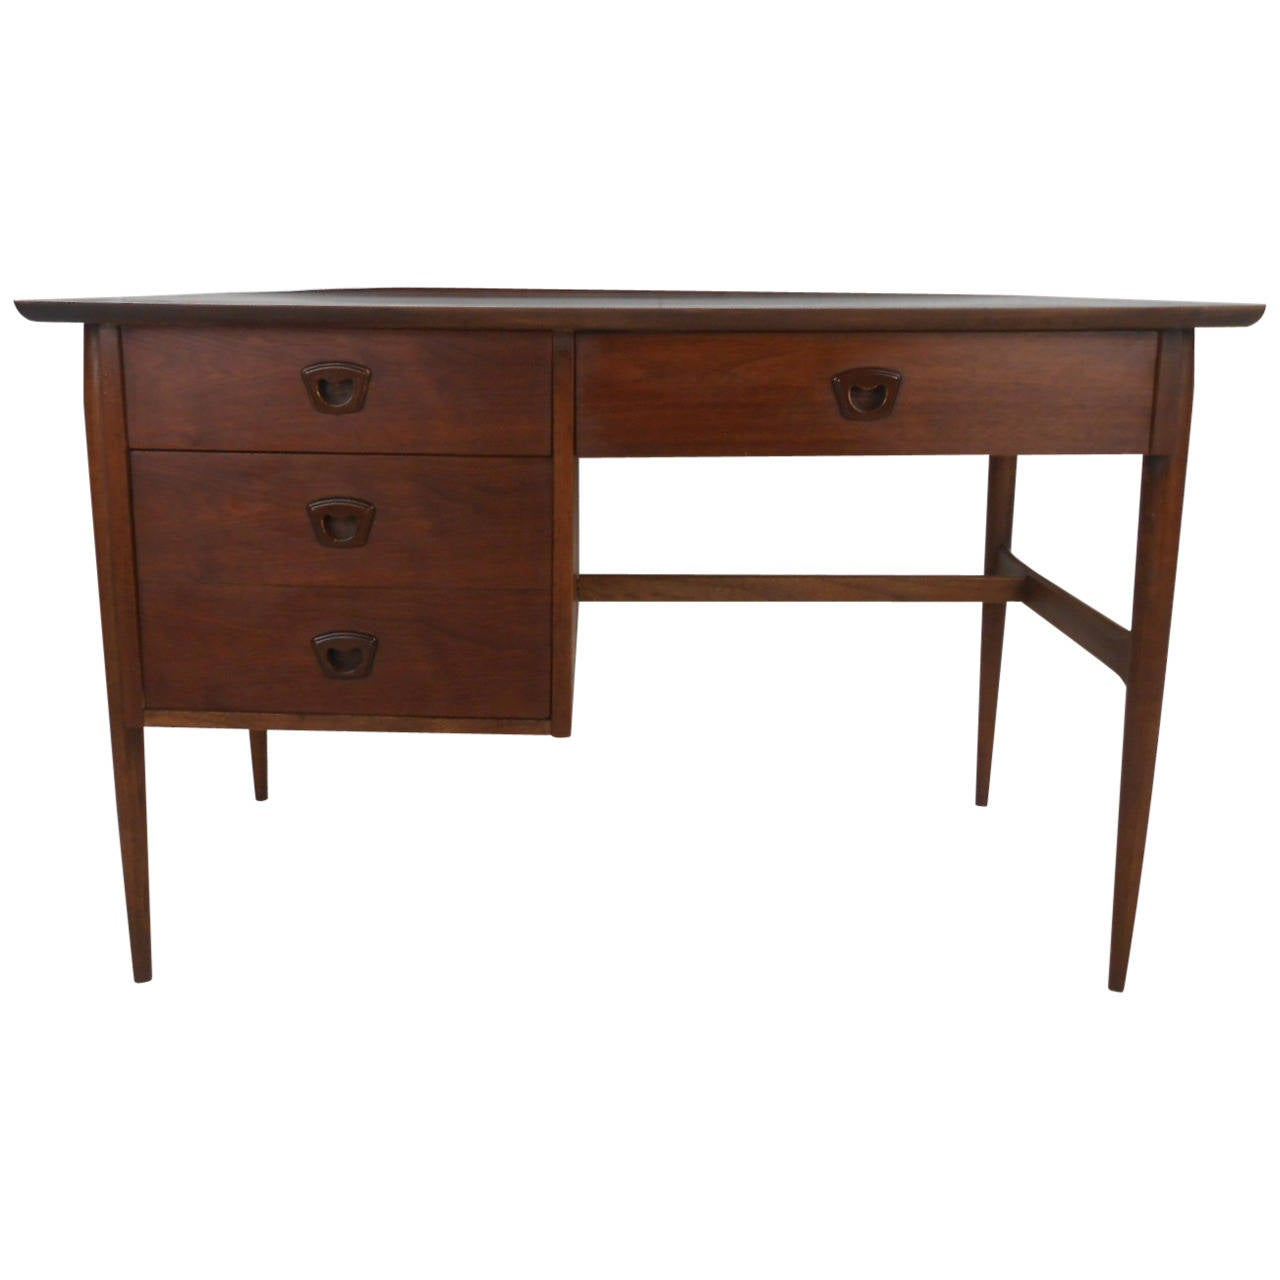 Stylish Vintage Modern Desk by Bassett For Sale